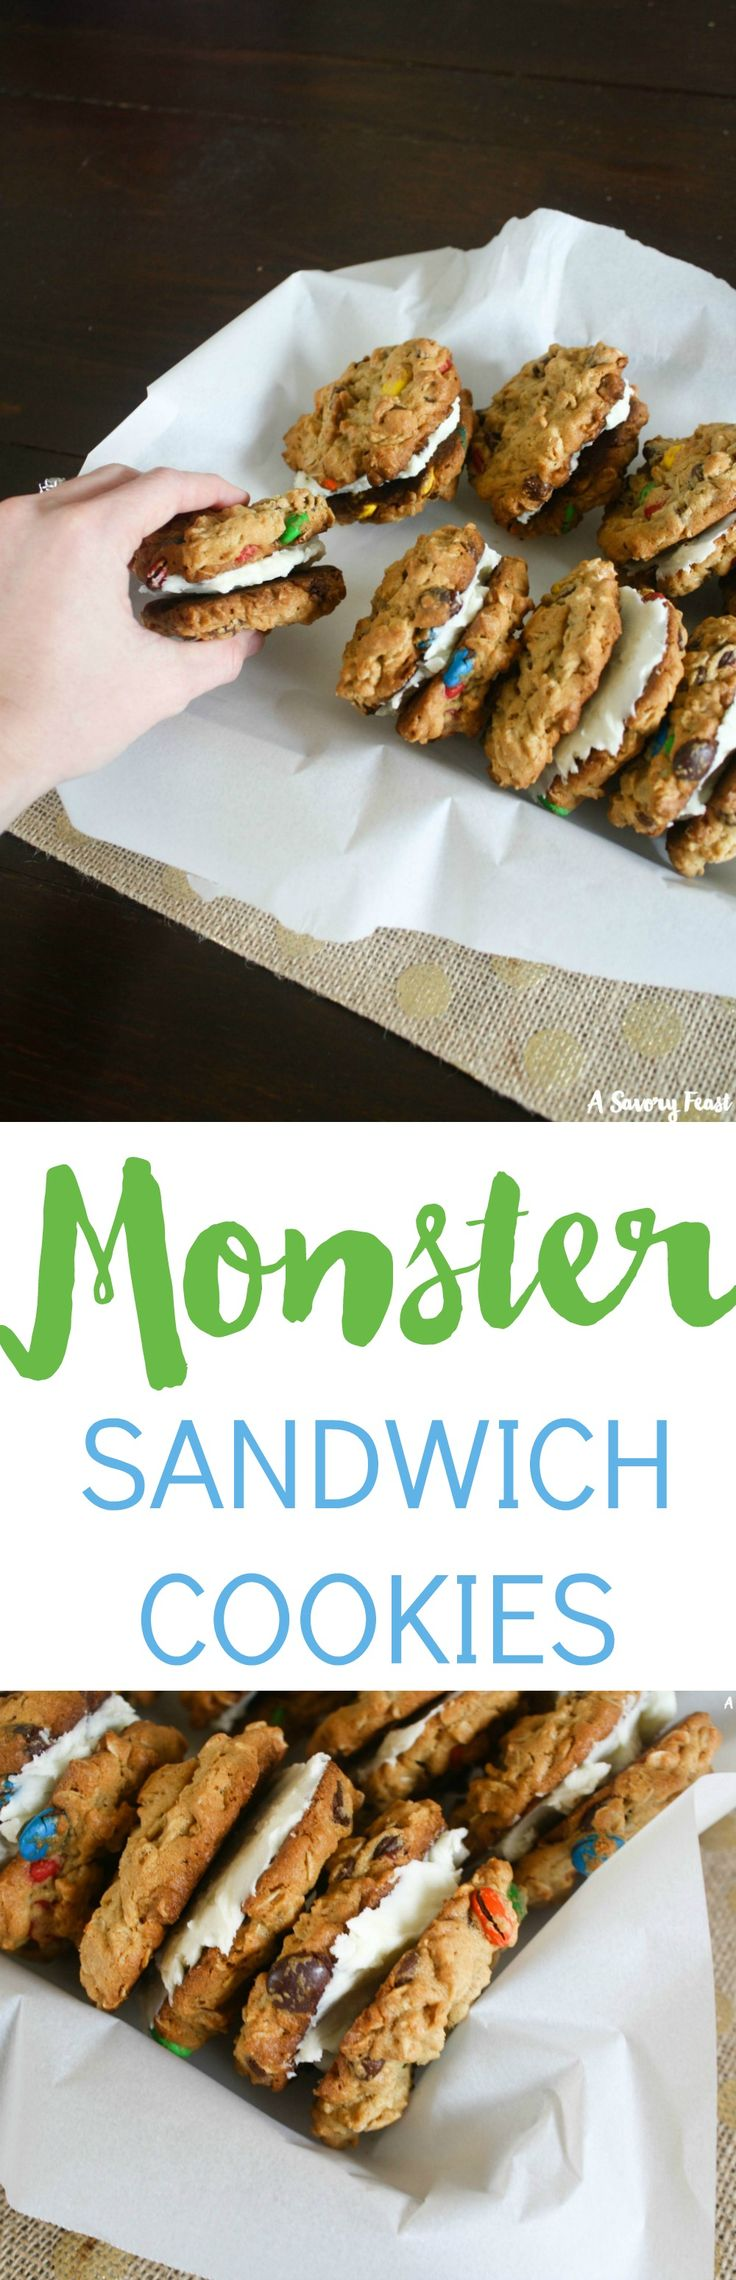 These HUGE Monster Sandwich Cookies are over-the-top good! Monster Cookies are a favorite because of how they are packed with all sorts of yummy ingredients: chocolate chips, M&M's, oats and more. This sandwich takes them to the next level by adding a sweet icing in between two cookies.